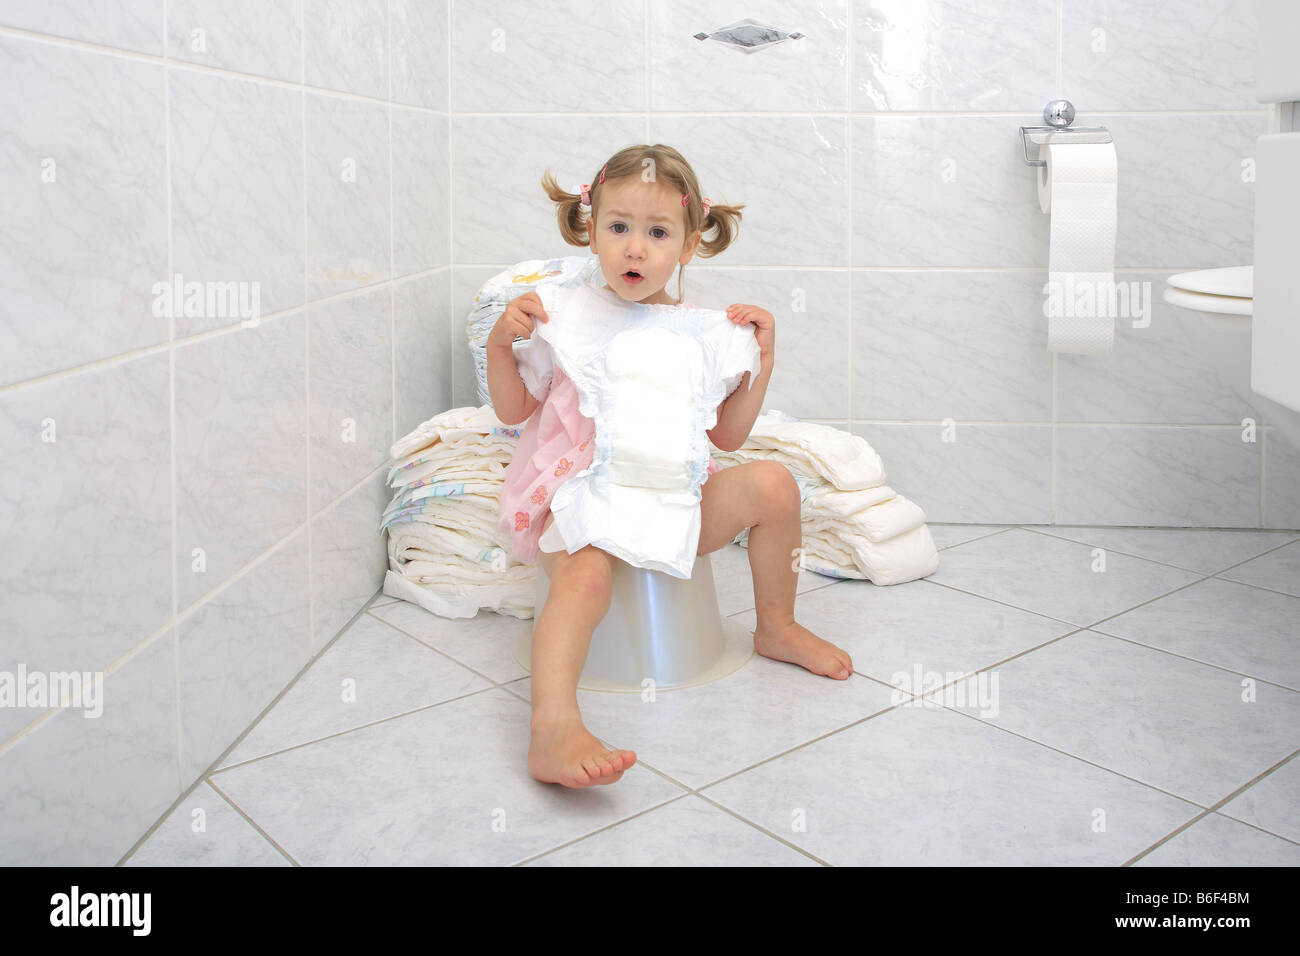 potty training, little girl sitting on potty, looking at a ...